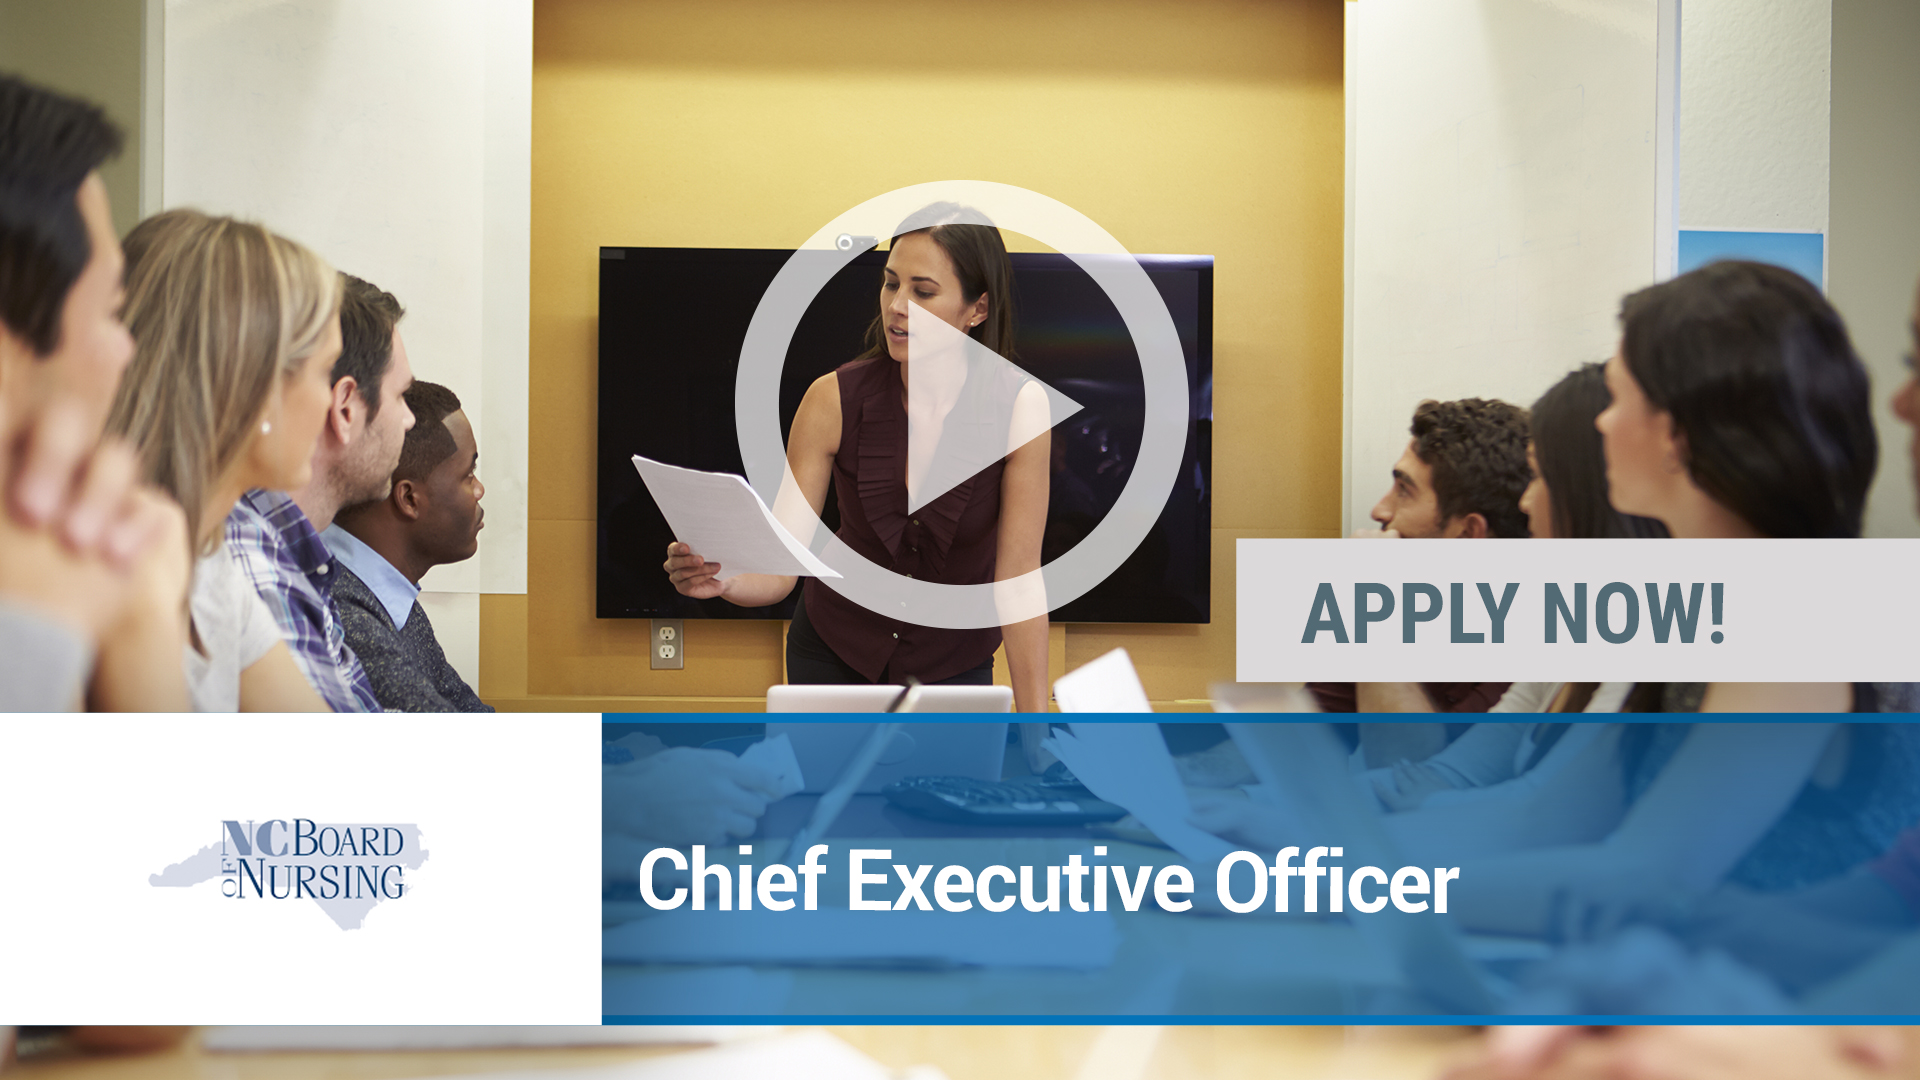 Watch our careers video for available job opening Chief Executive Officer in Raleigh, NC